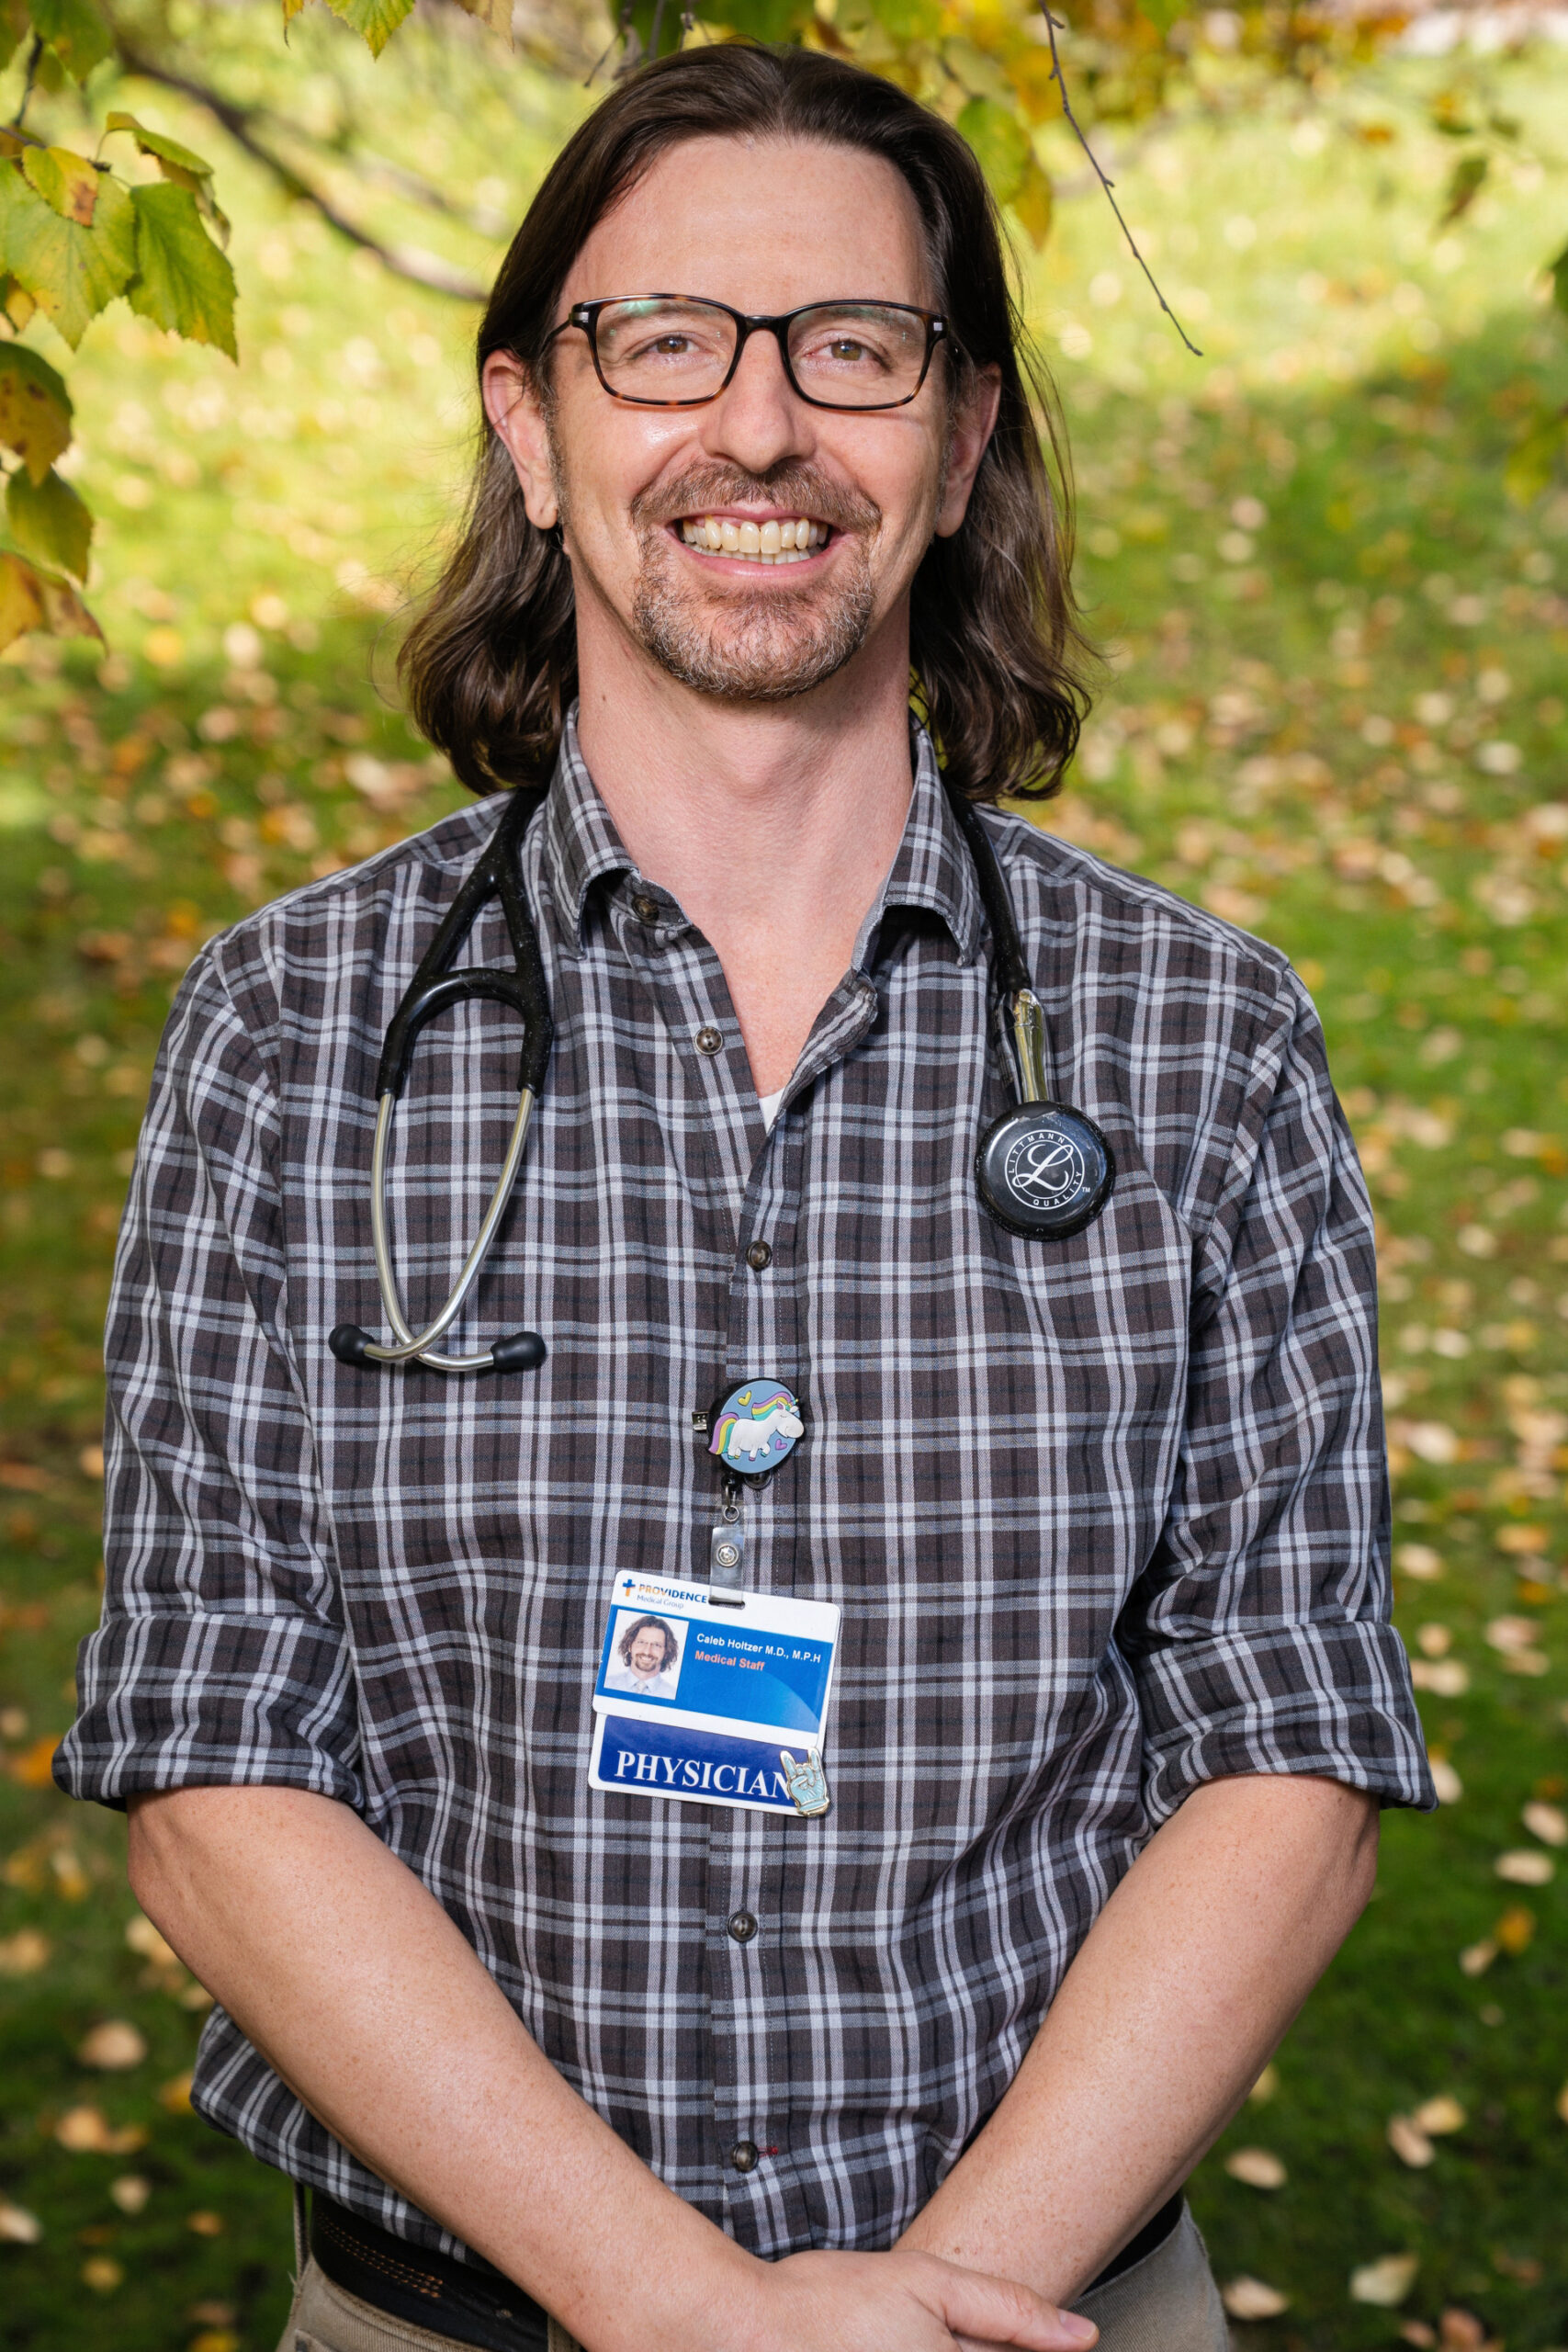 Caleb Holtzer, MD, MPH